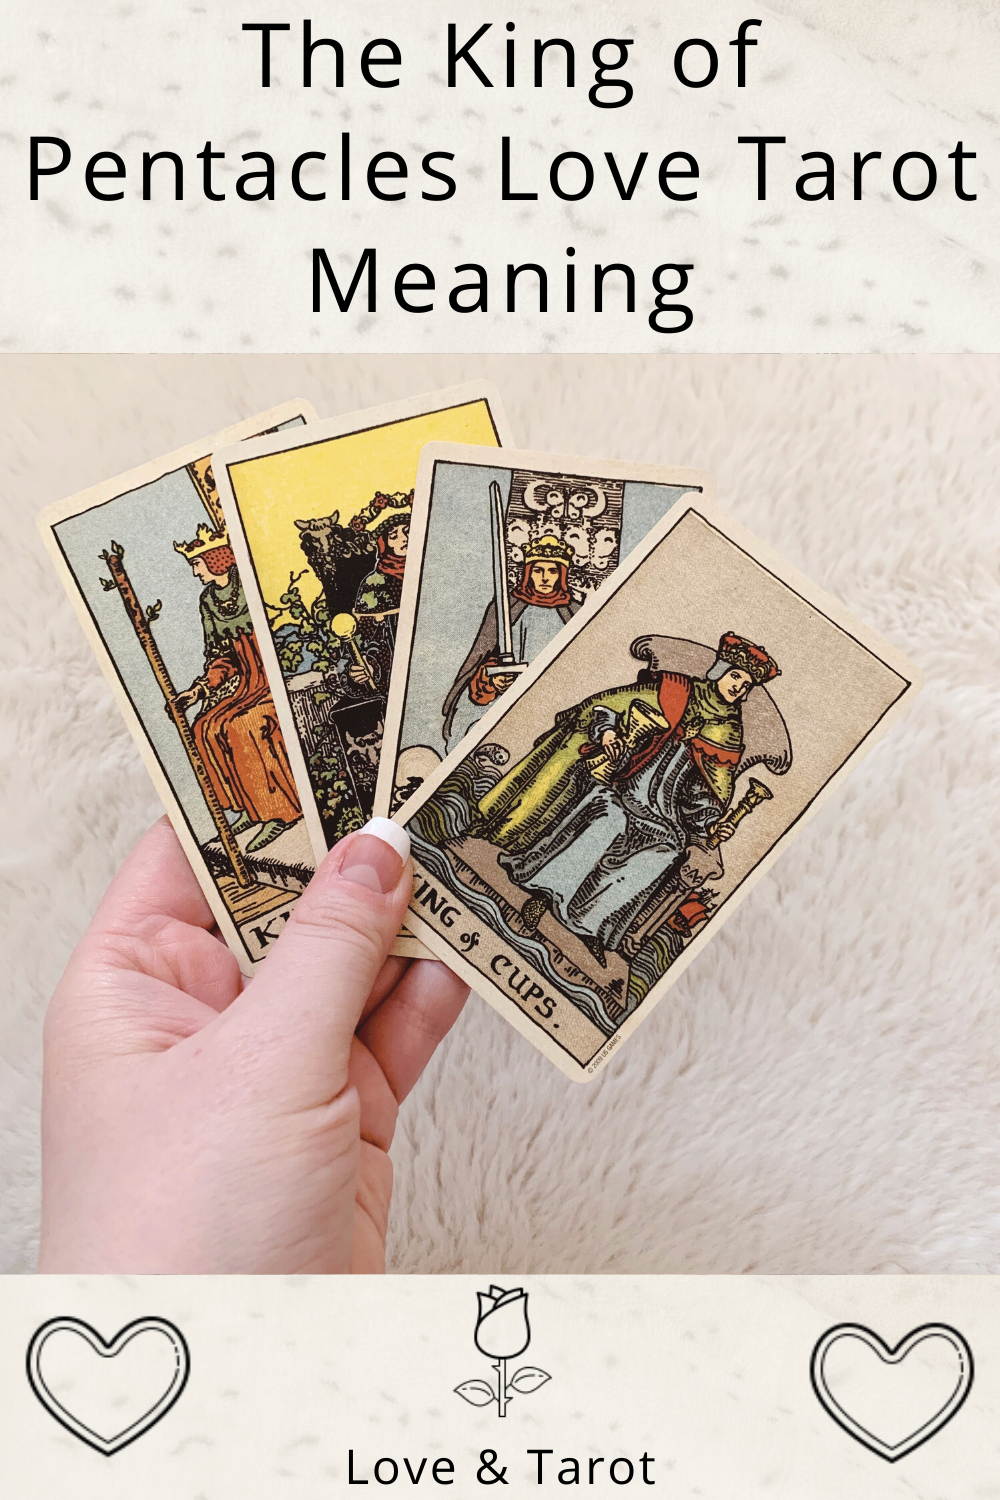 King of Pentacles Love Tarot Meaning